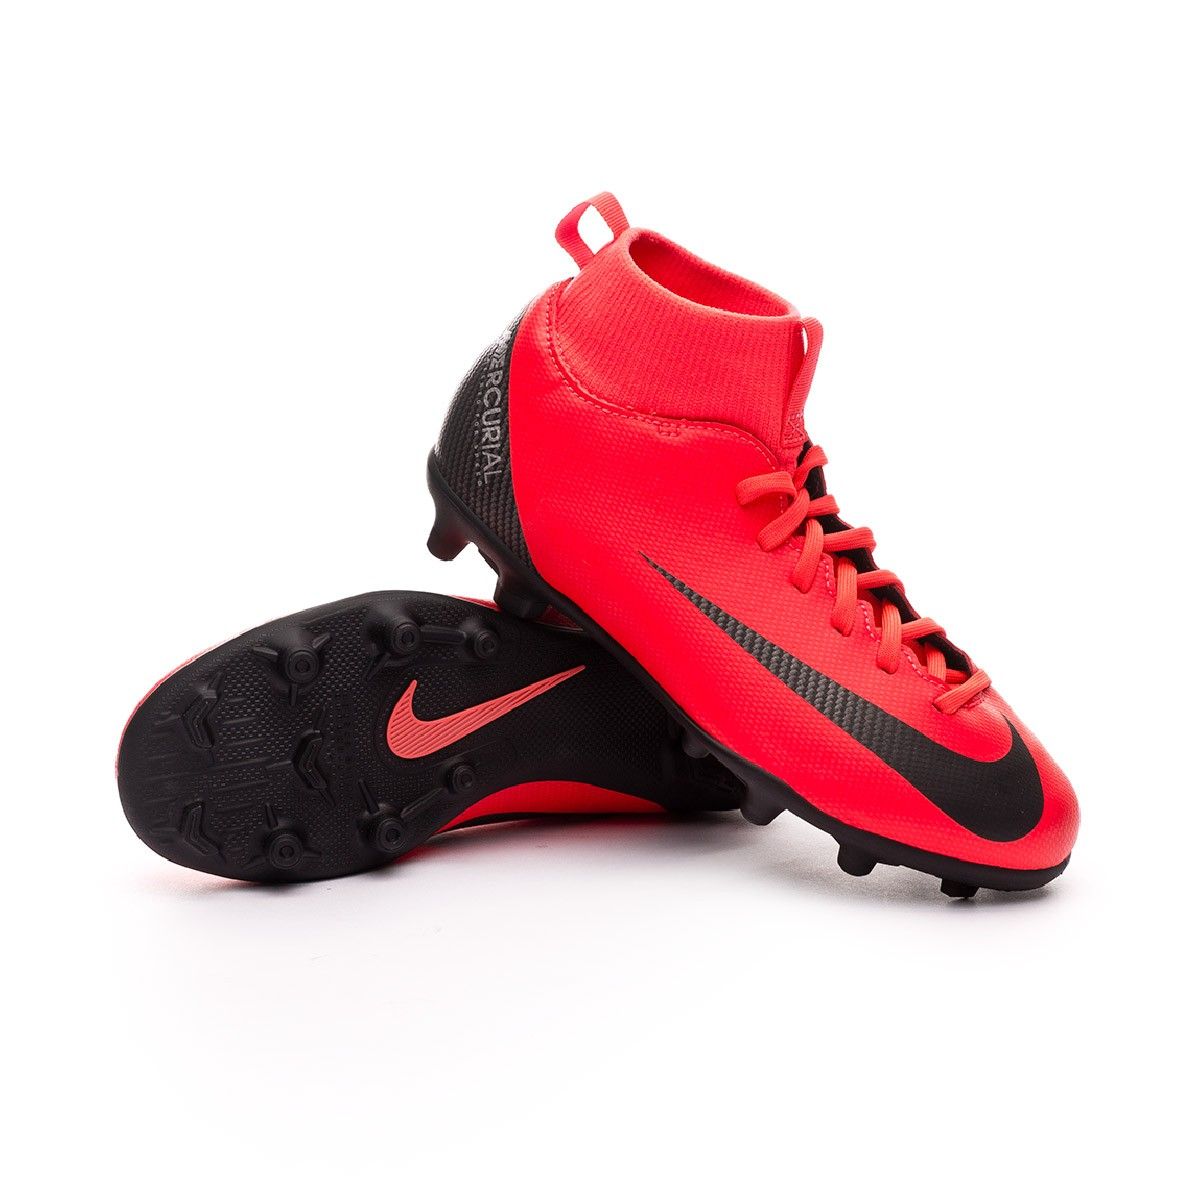 328bf7b55 Boot Nike Kids Mercurial Superfly VI Club CR7 MG Bright crimson ...